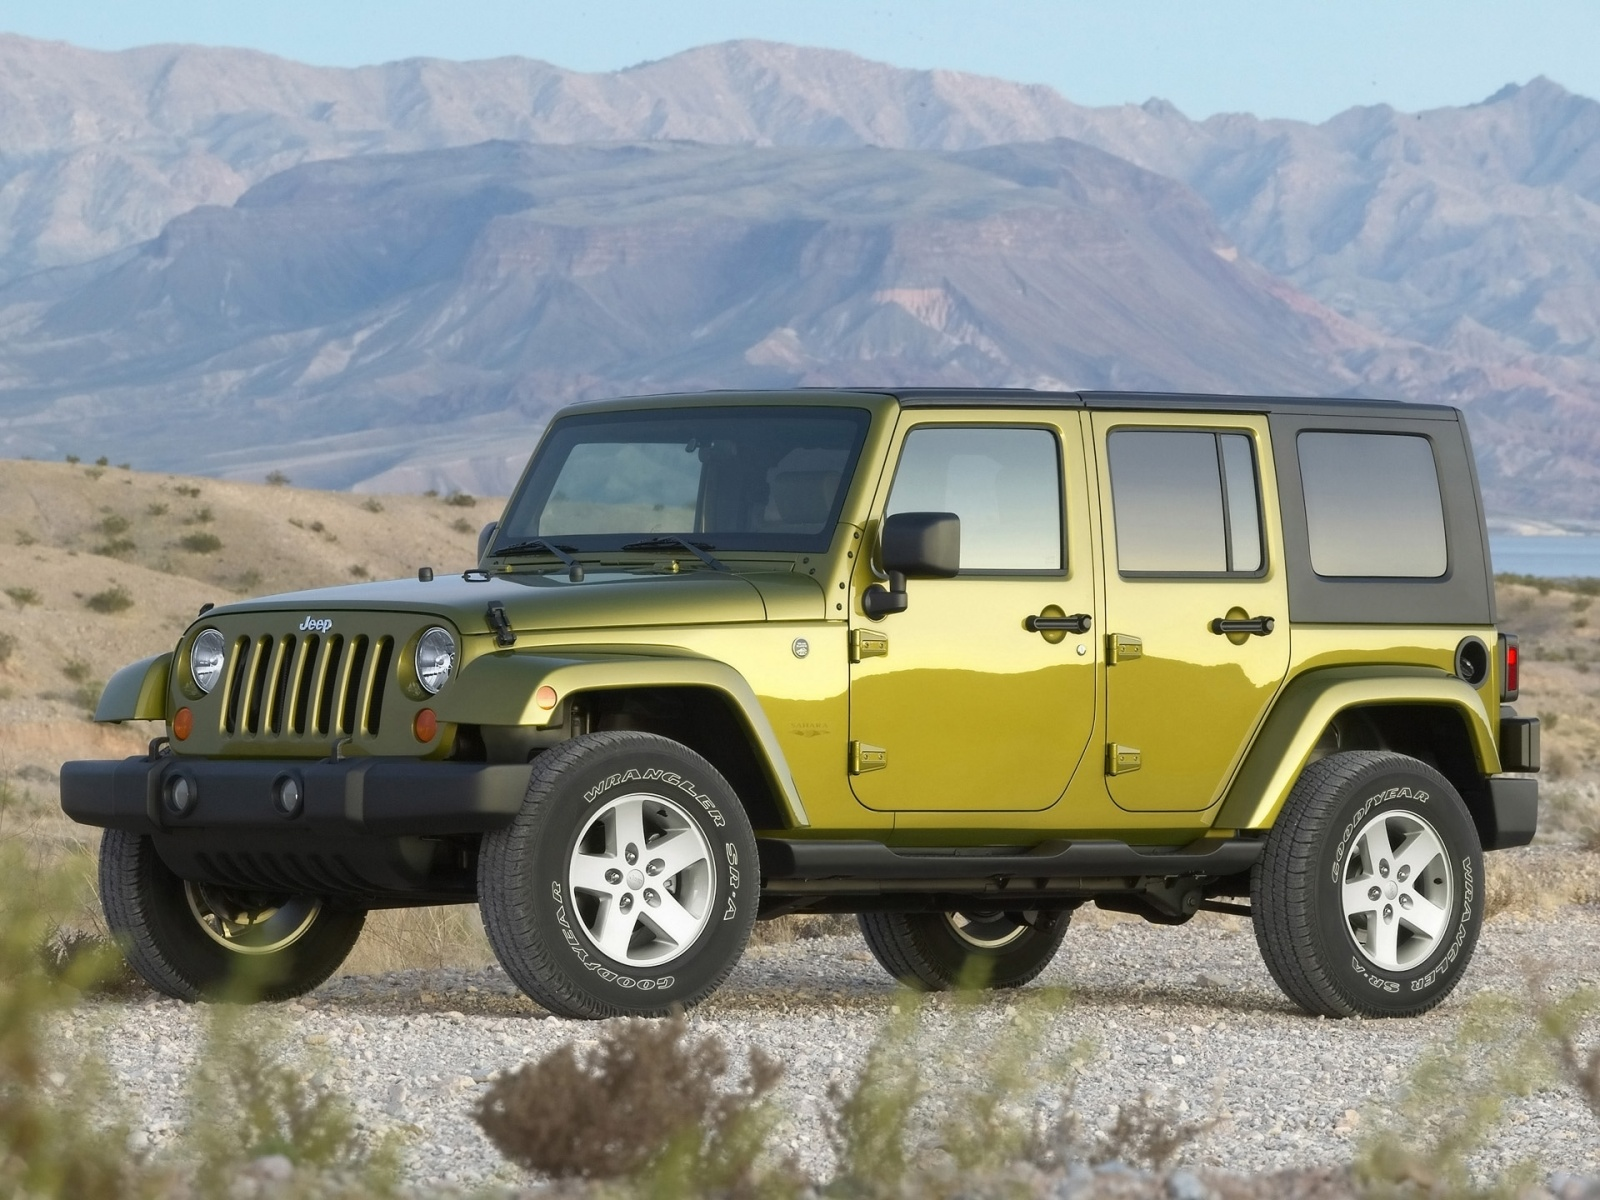 Green Jeep Wrangler Wallpaper Desktop Wallpaper with 1600x1200 1600x1200